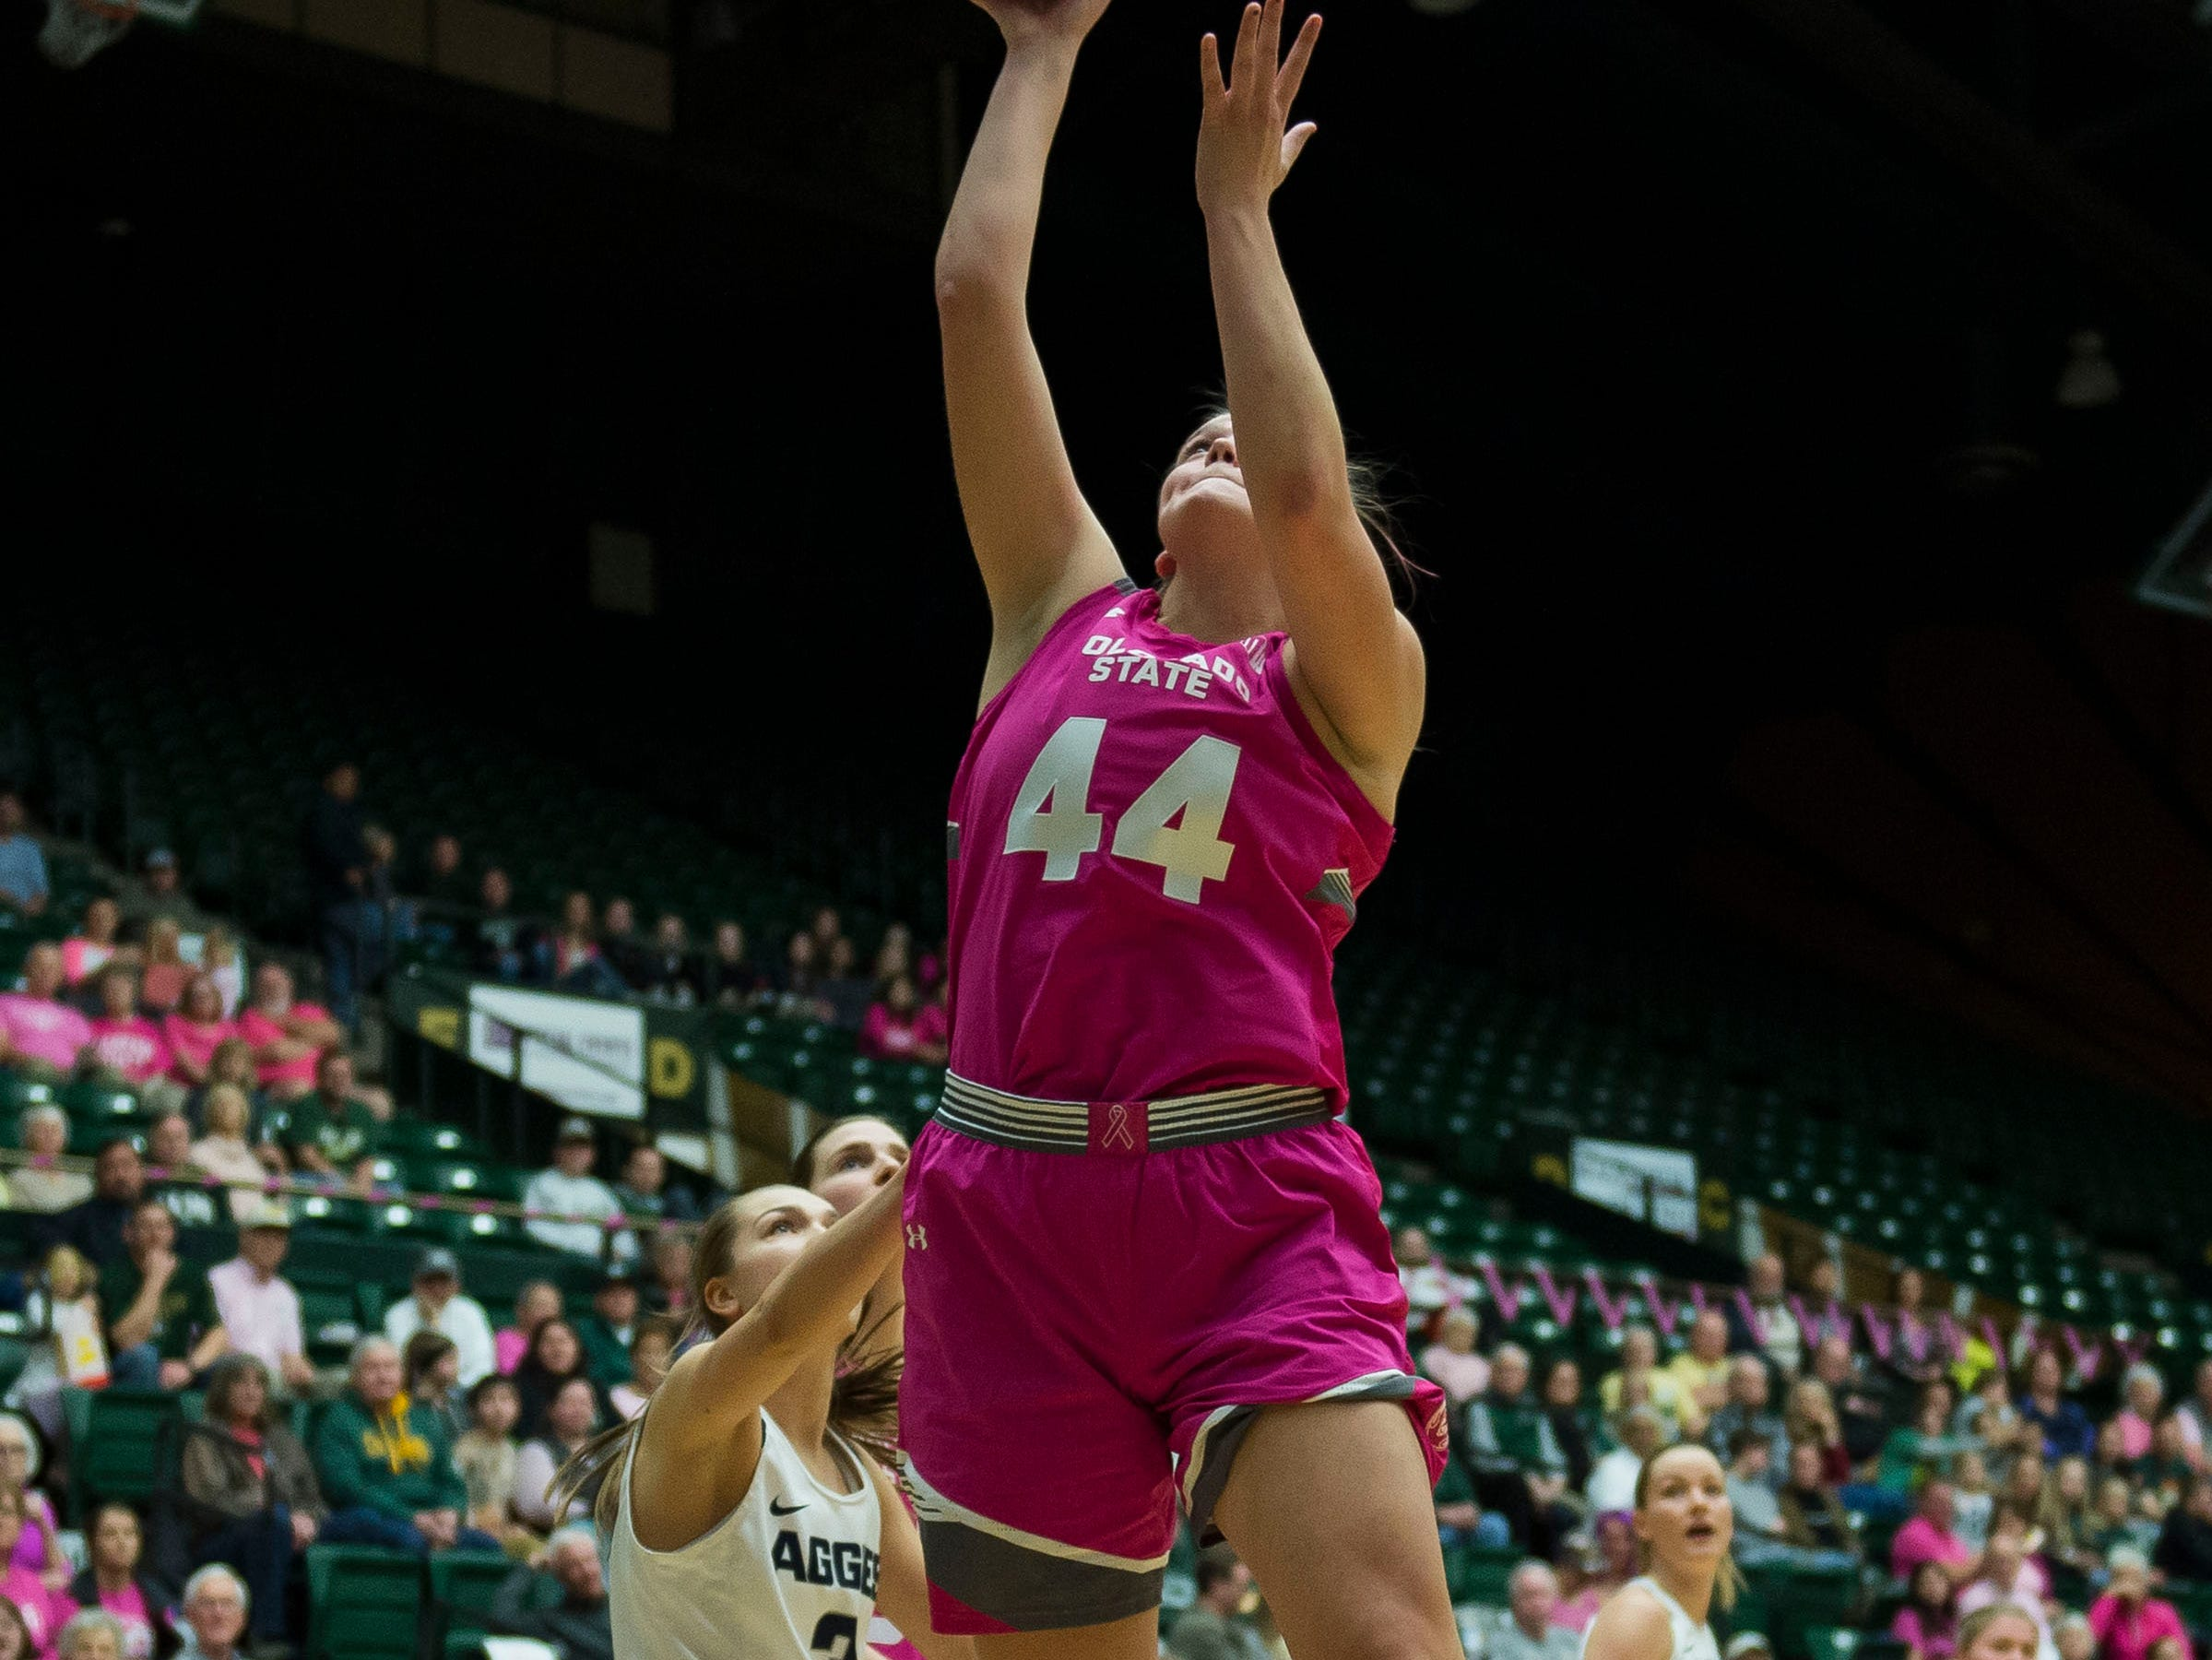 Colorado State University senior forward Tatum Neubert (44) puts a shot up during a game against Utah State on Saturday, Jan. 19, 2019, at Moby Arena in Fort Collins, Colo.